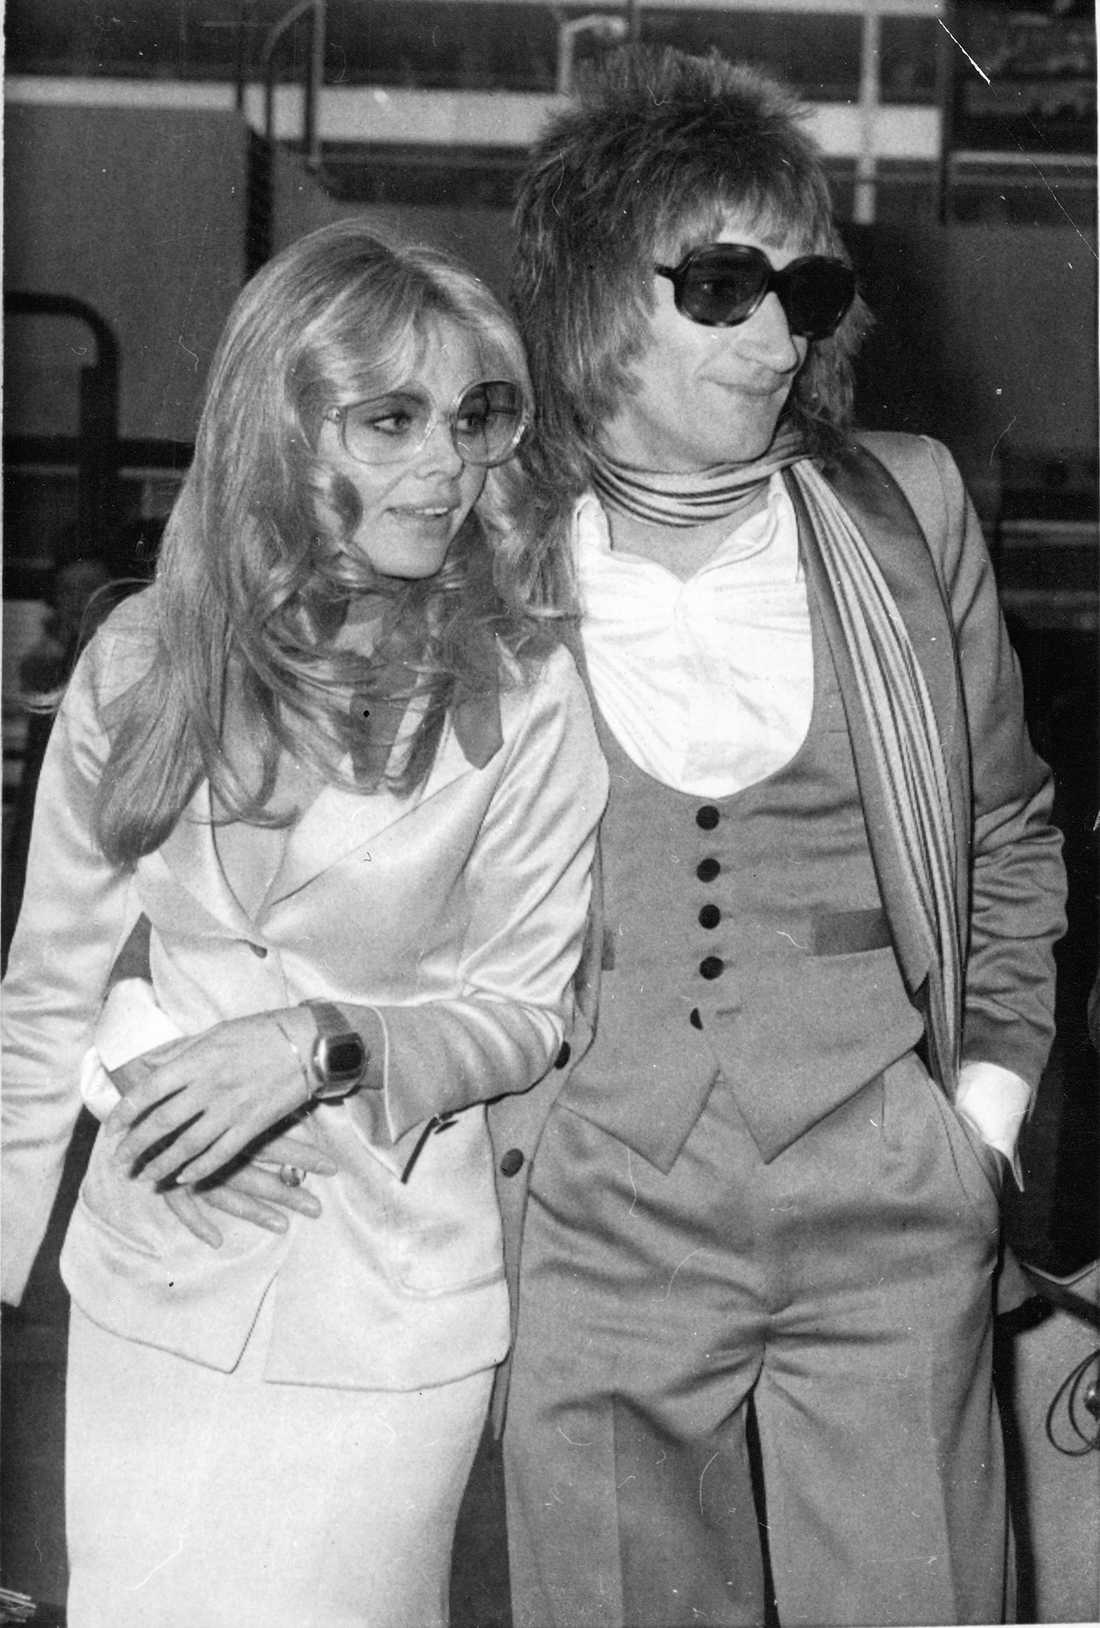 Britt Ekland och sångaren Rod Stewart glassar loss på Heathrow på 70-talet.